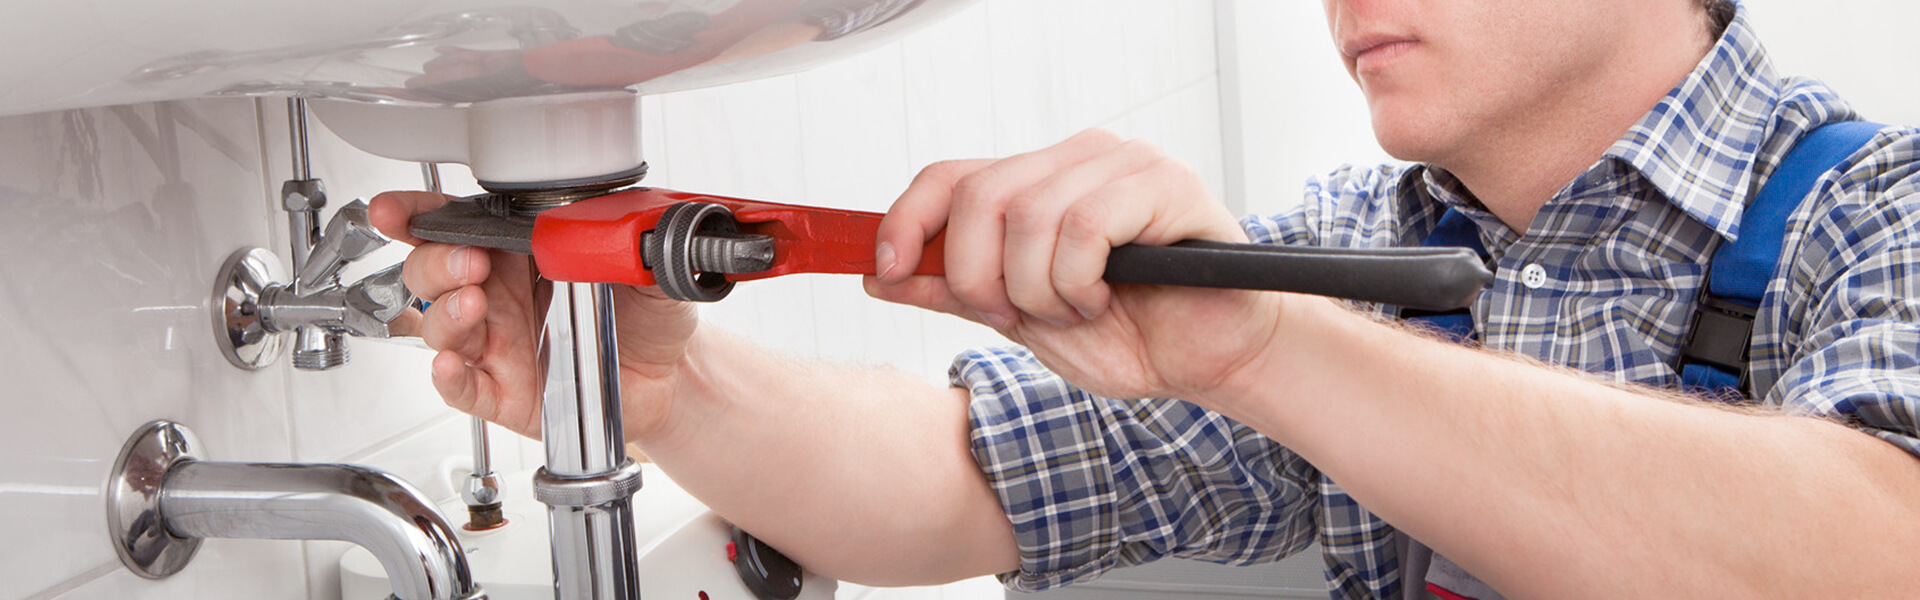 4 Factors To Consider When Choosing a Plumber